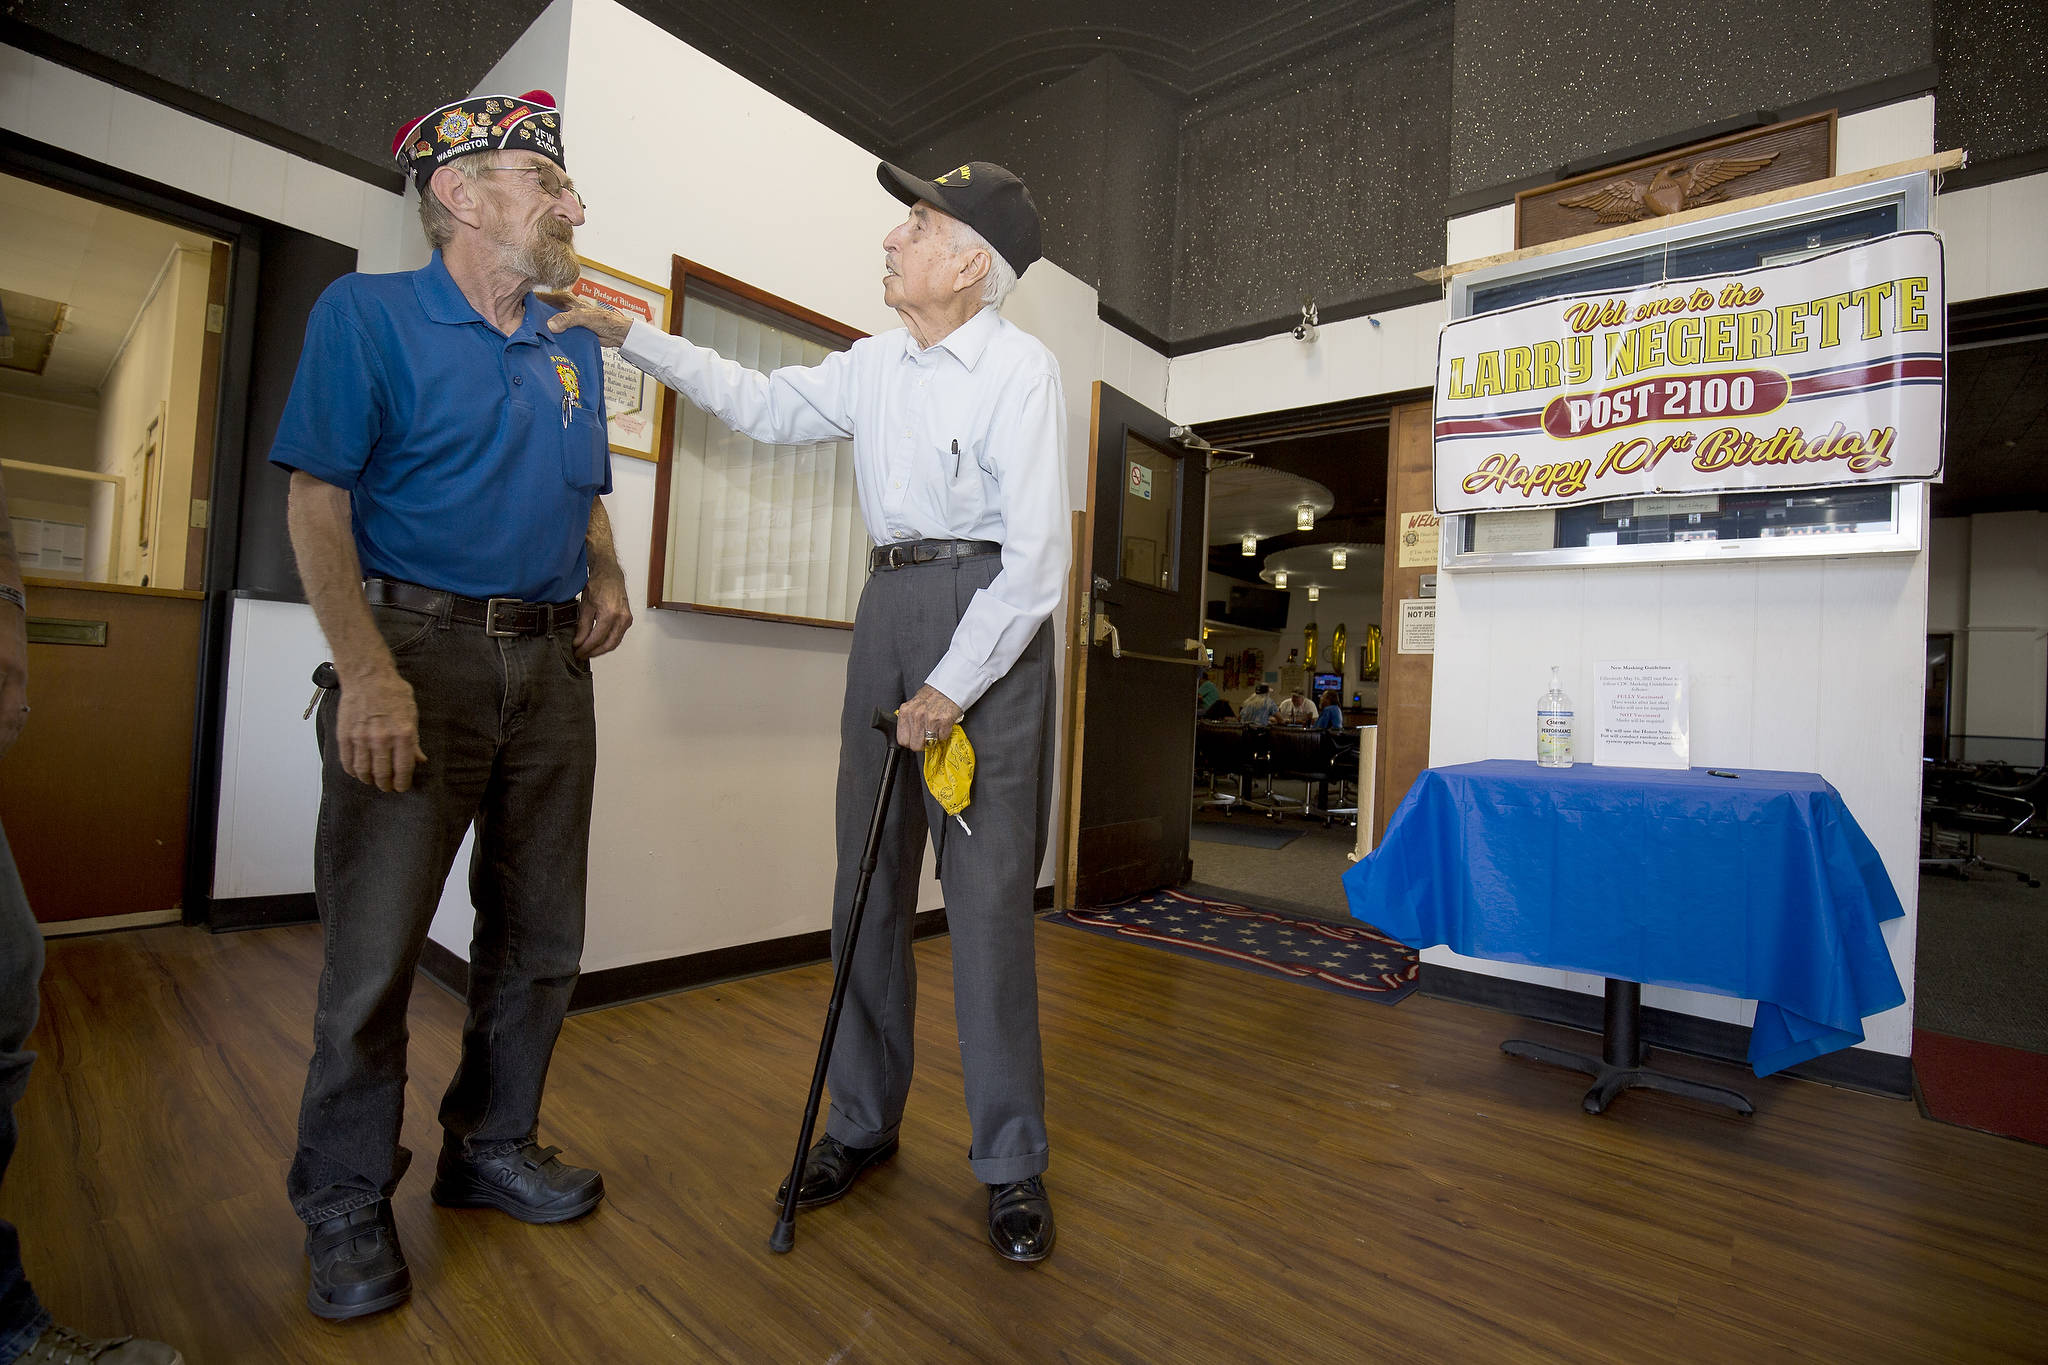 After showing off a few tap-dancing moves, Donald Wischmann (left) gets a little teasing from World War II veteran Larry Negrette, who was celebrating his 101st birthday at the Everett VFW Post on Tuesday. (Andy Bronson / The Herald)